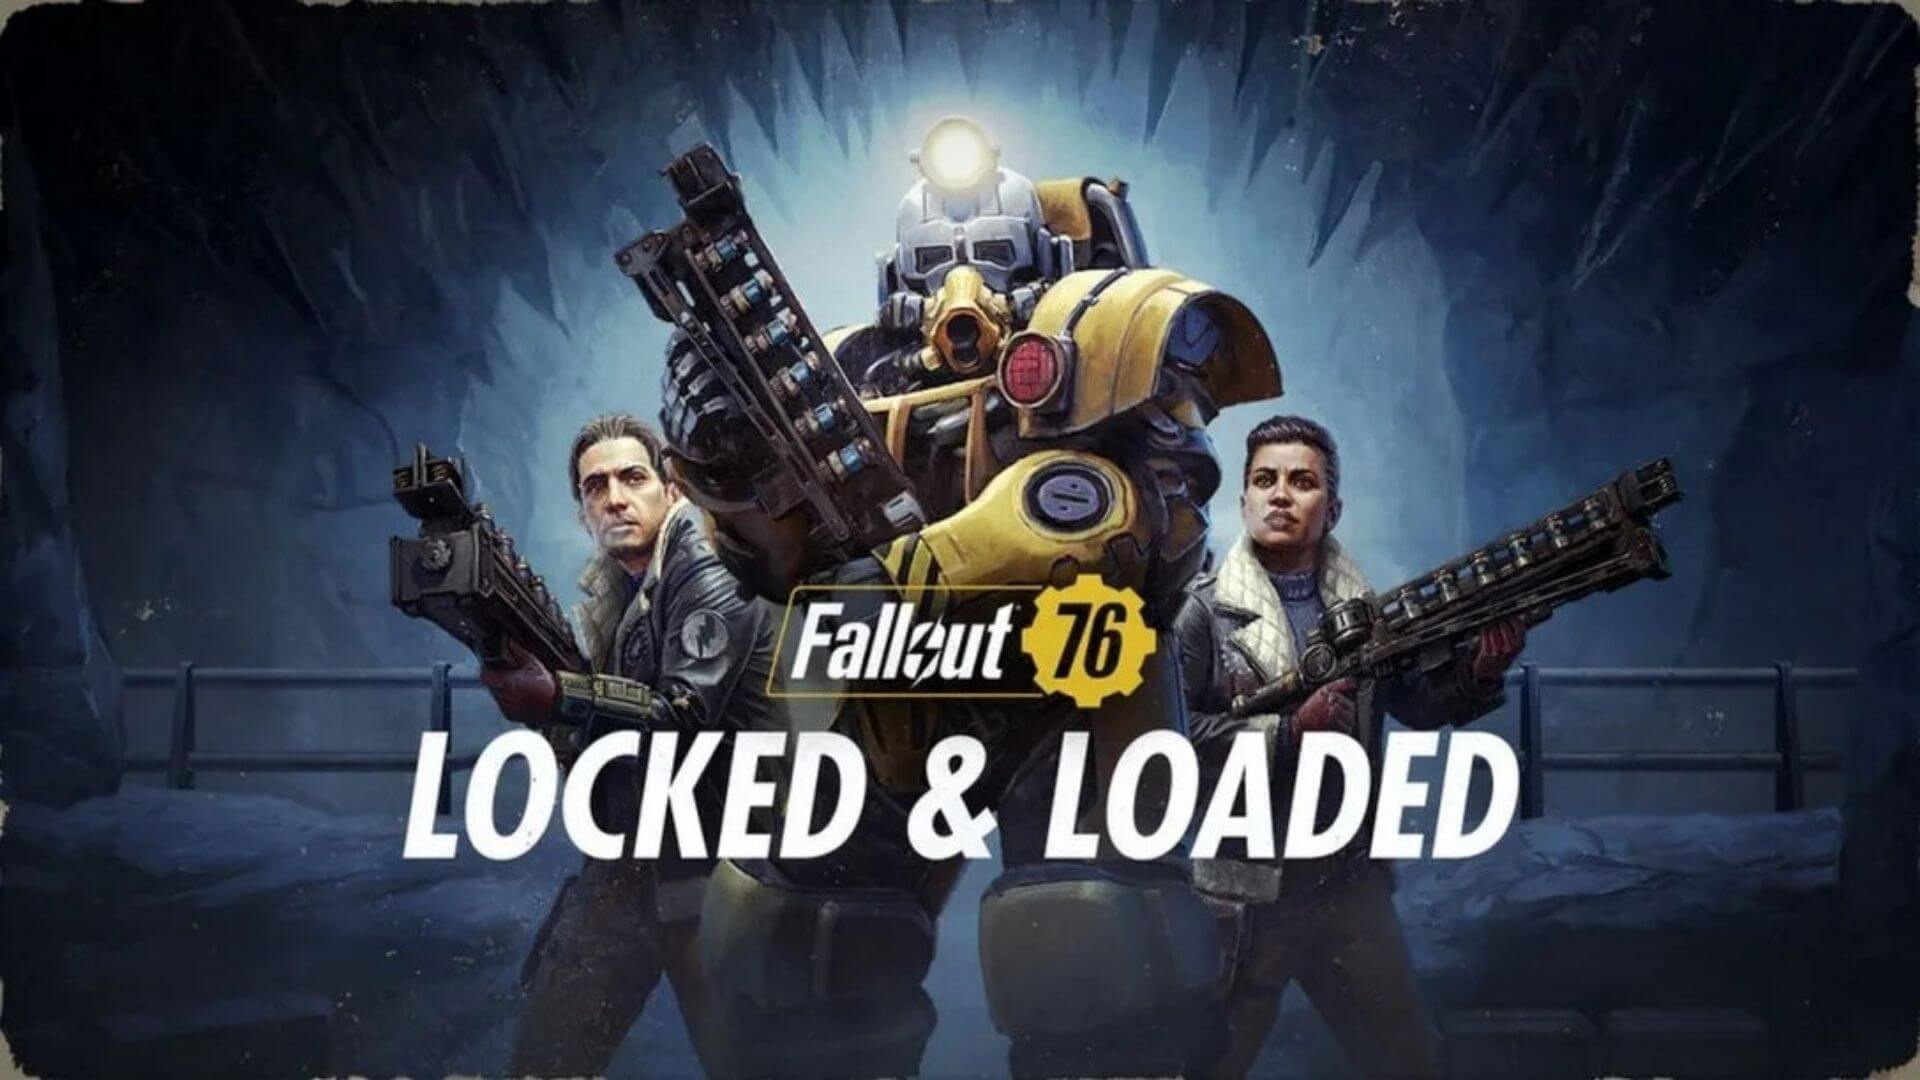 Fallout 76 Gets Locked and Loaded with Season 4 Update